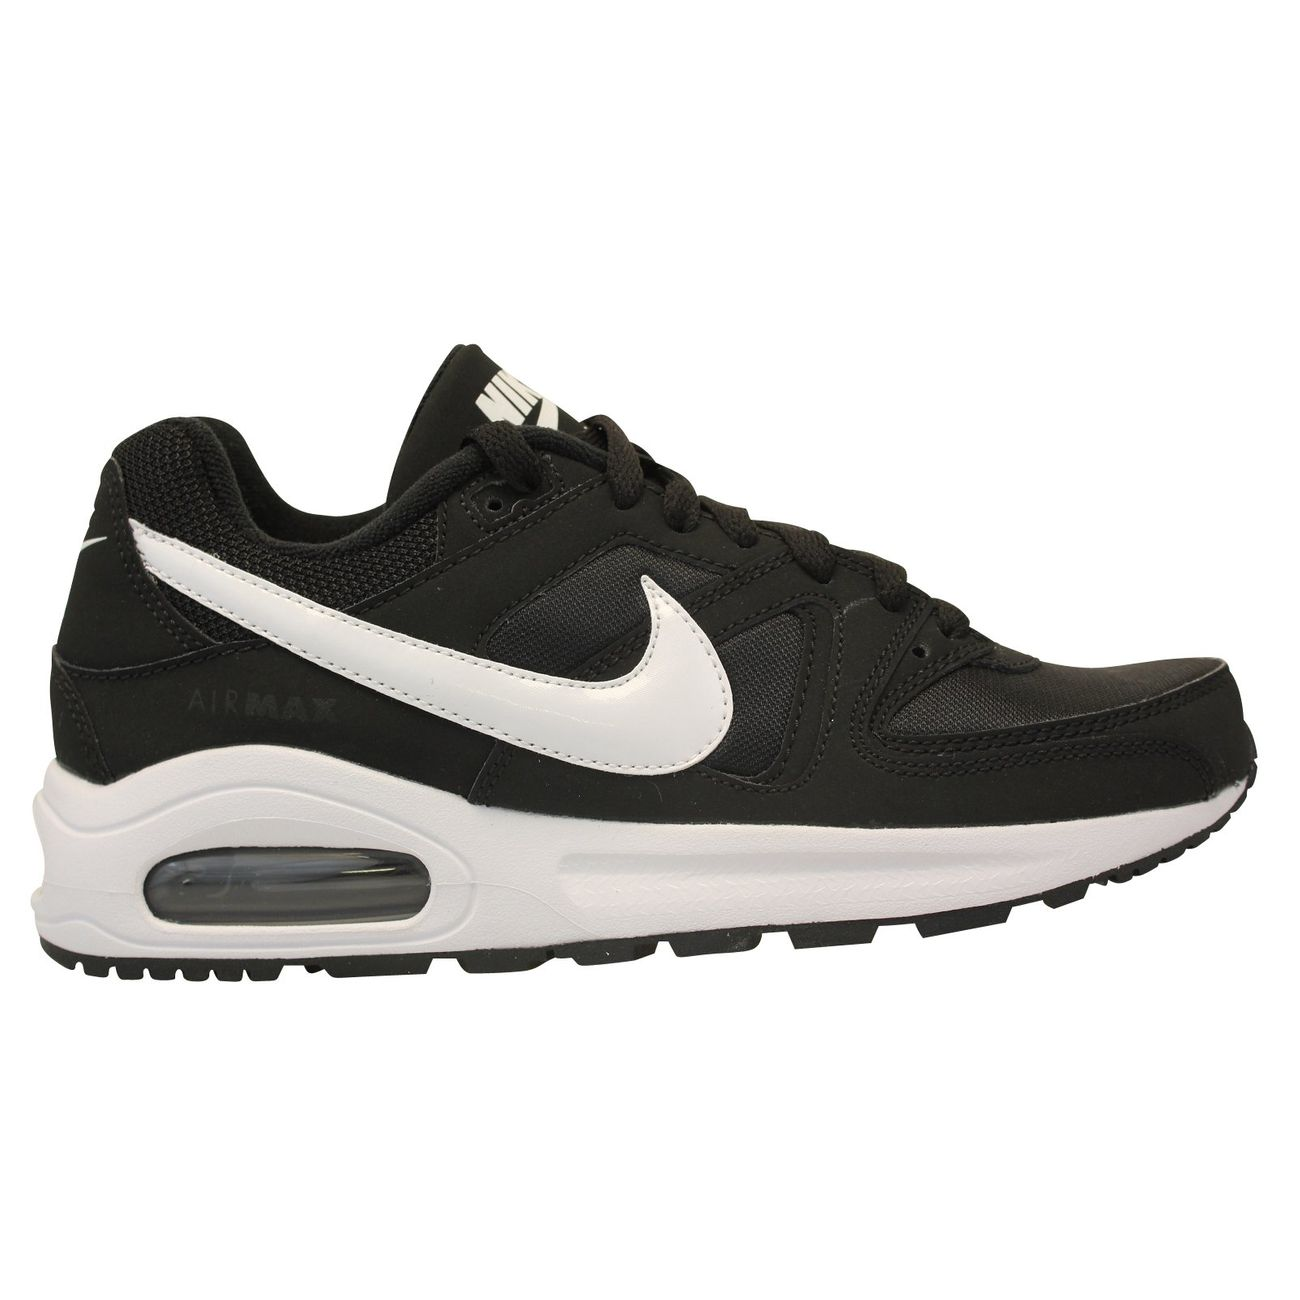 Mode Lifestyle homme NIKE Nike Air Max Command Flex 844346 011